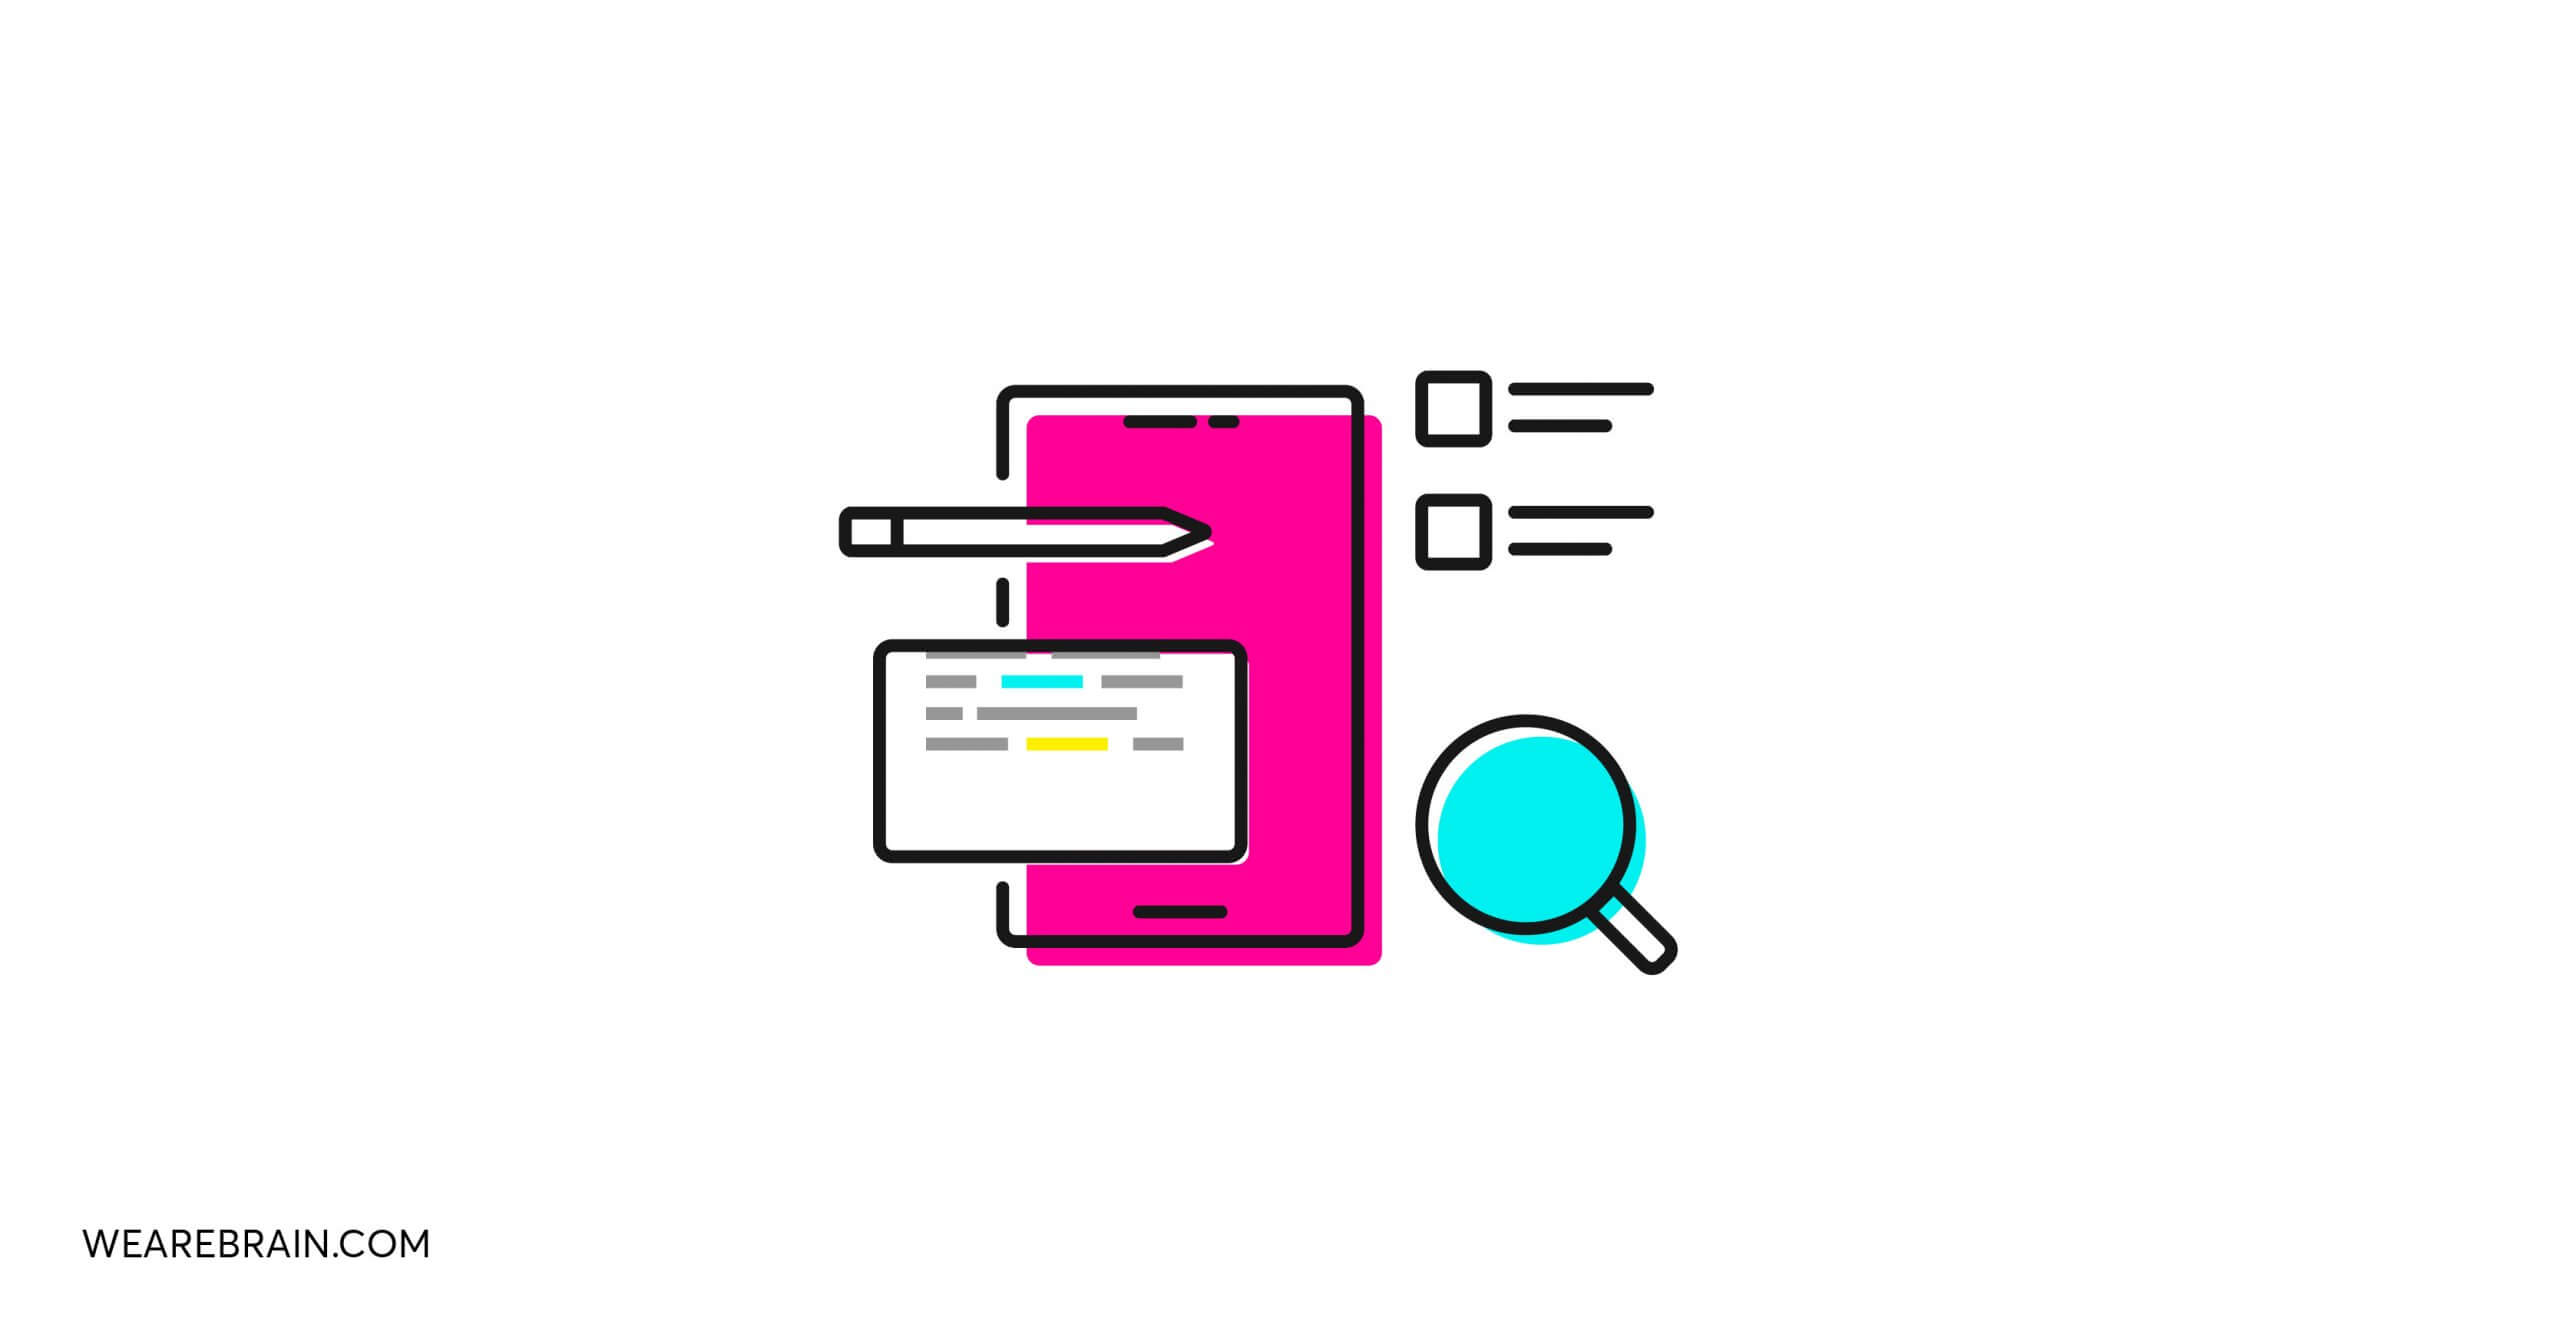 guide for how to build an app